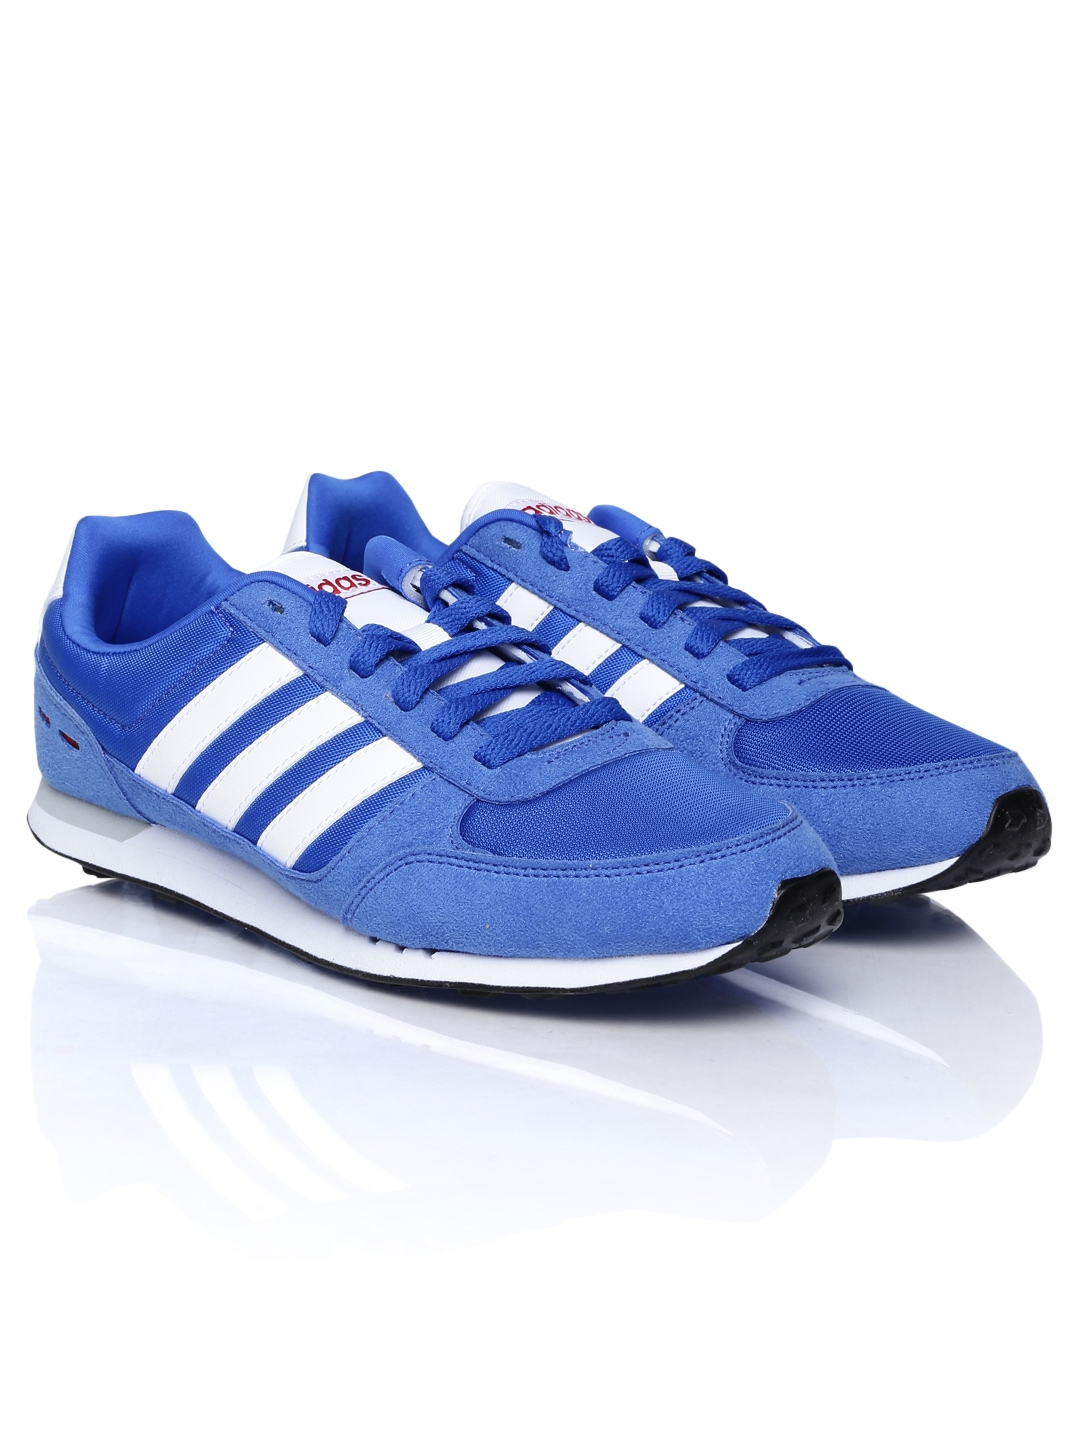 adidas neo blue and white